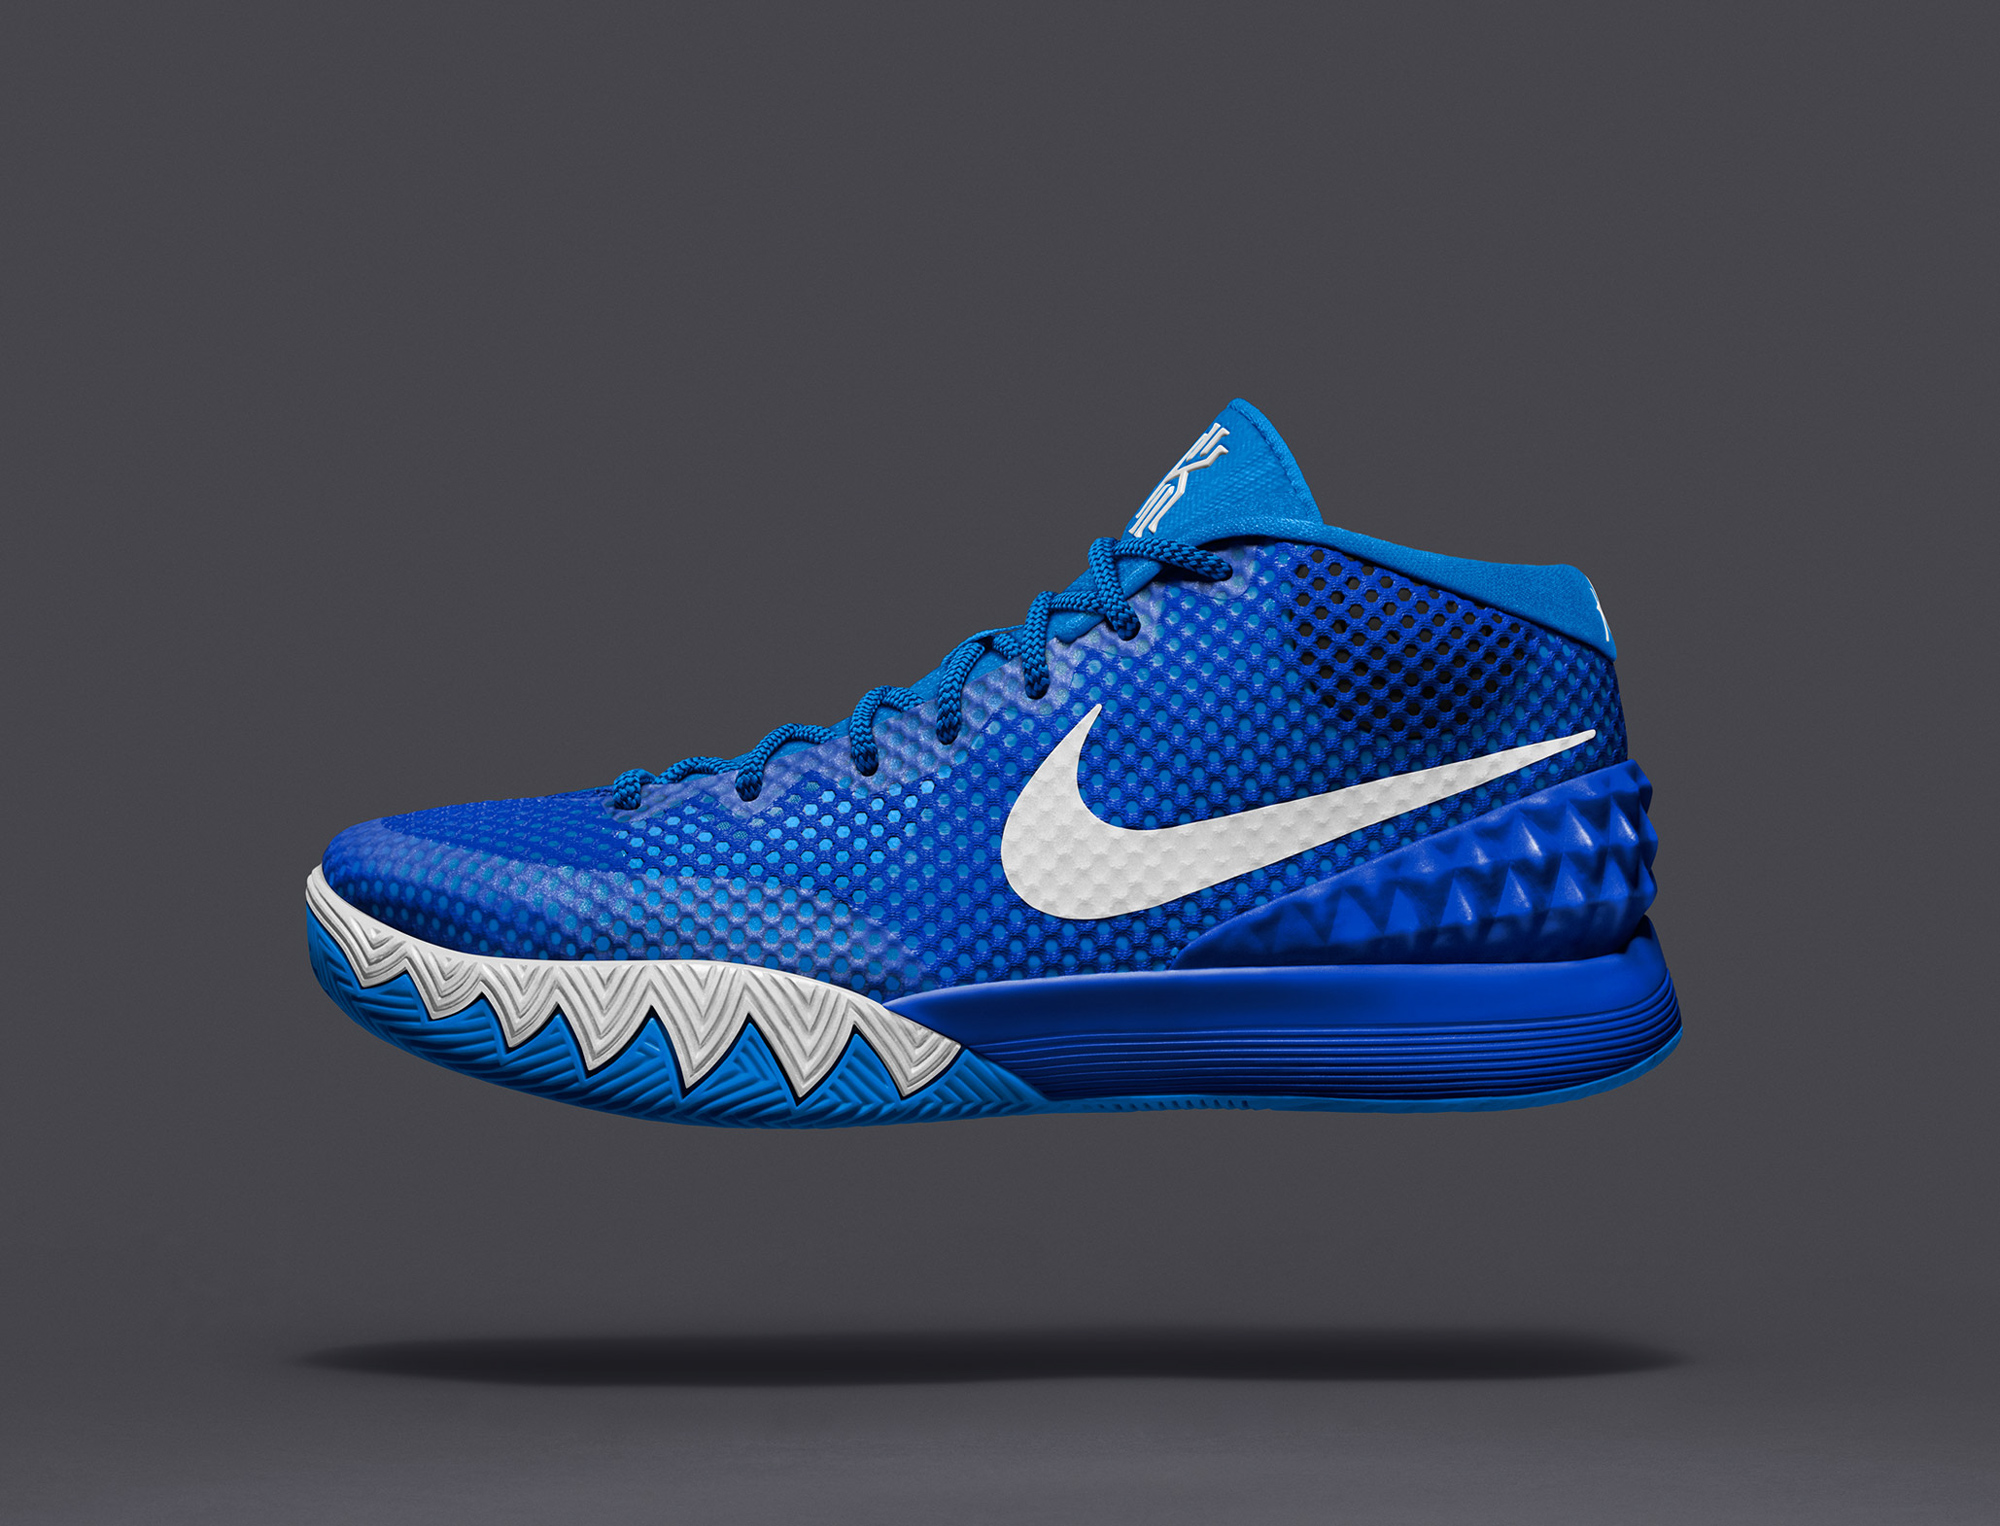 on sale 15bb9 2b3af new arrivals nike kyrie 4 mens c0596 411a2  cheapest los angeles 1a615  d2c3c kyrie irving unveils the kyrie 1 nikeid shoe in brooklyn ton